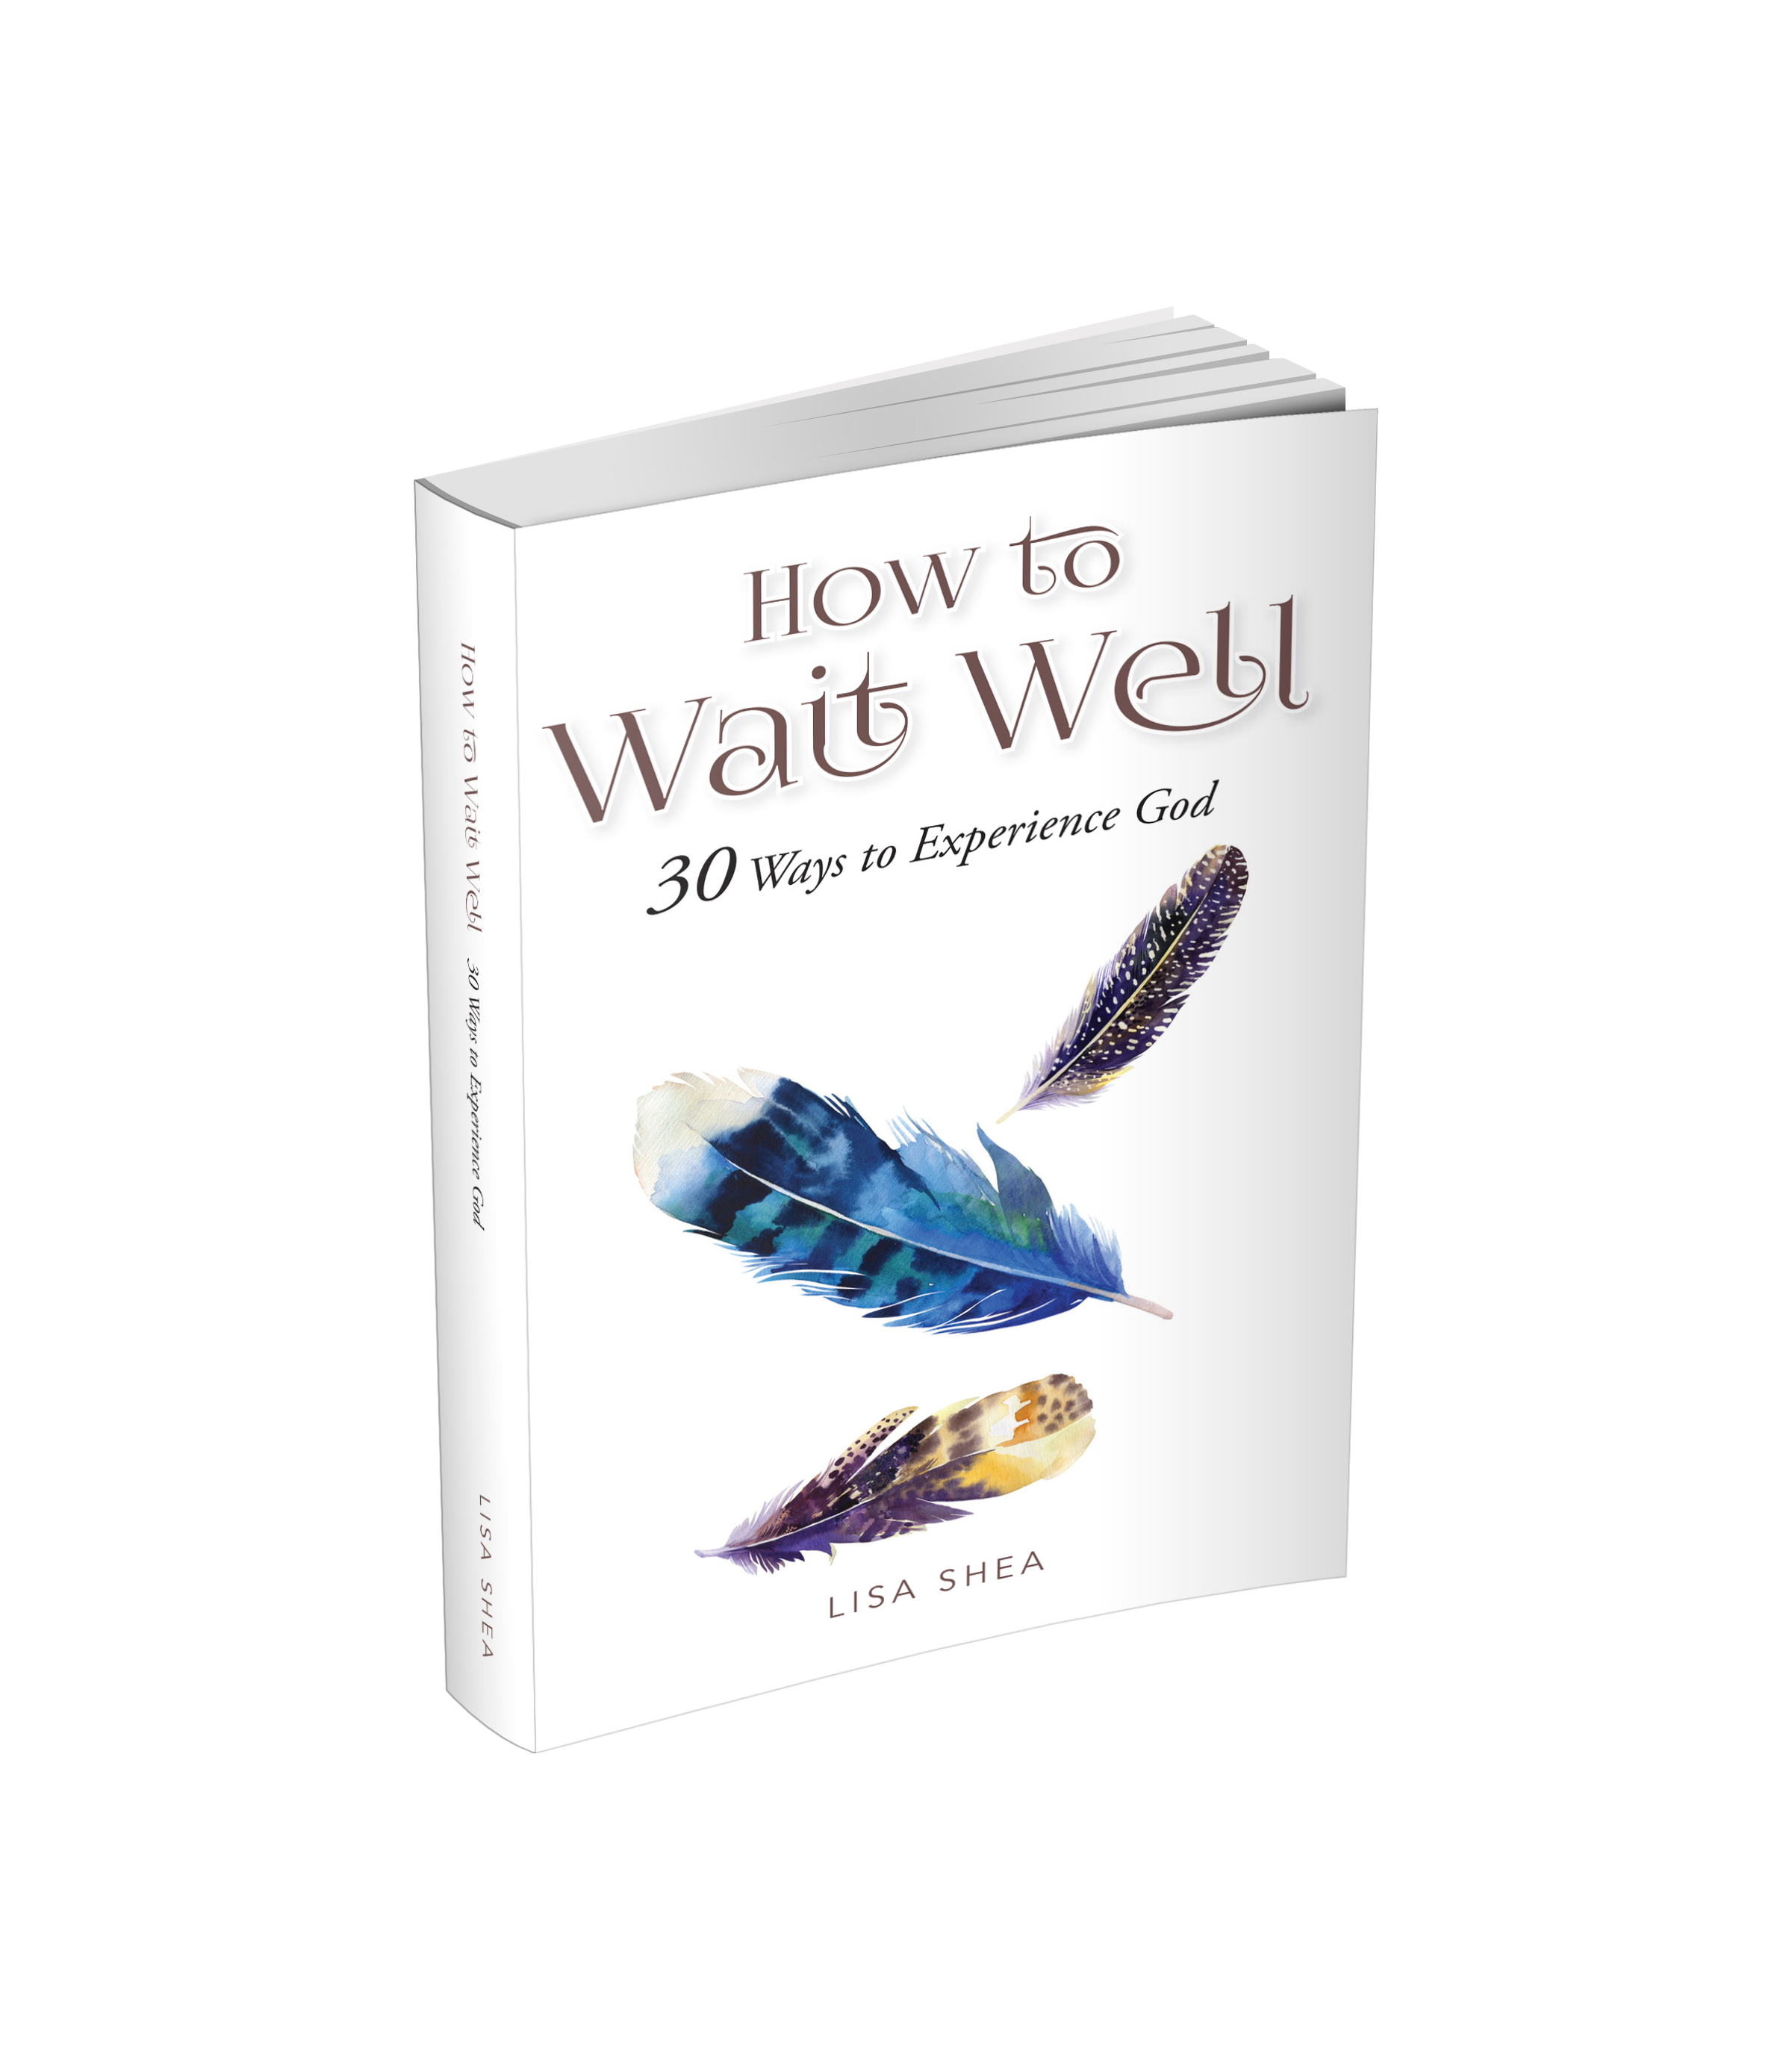 How to Wait Well 3-d book.png